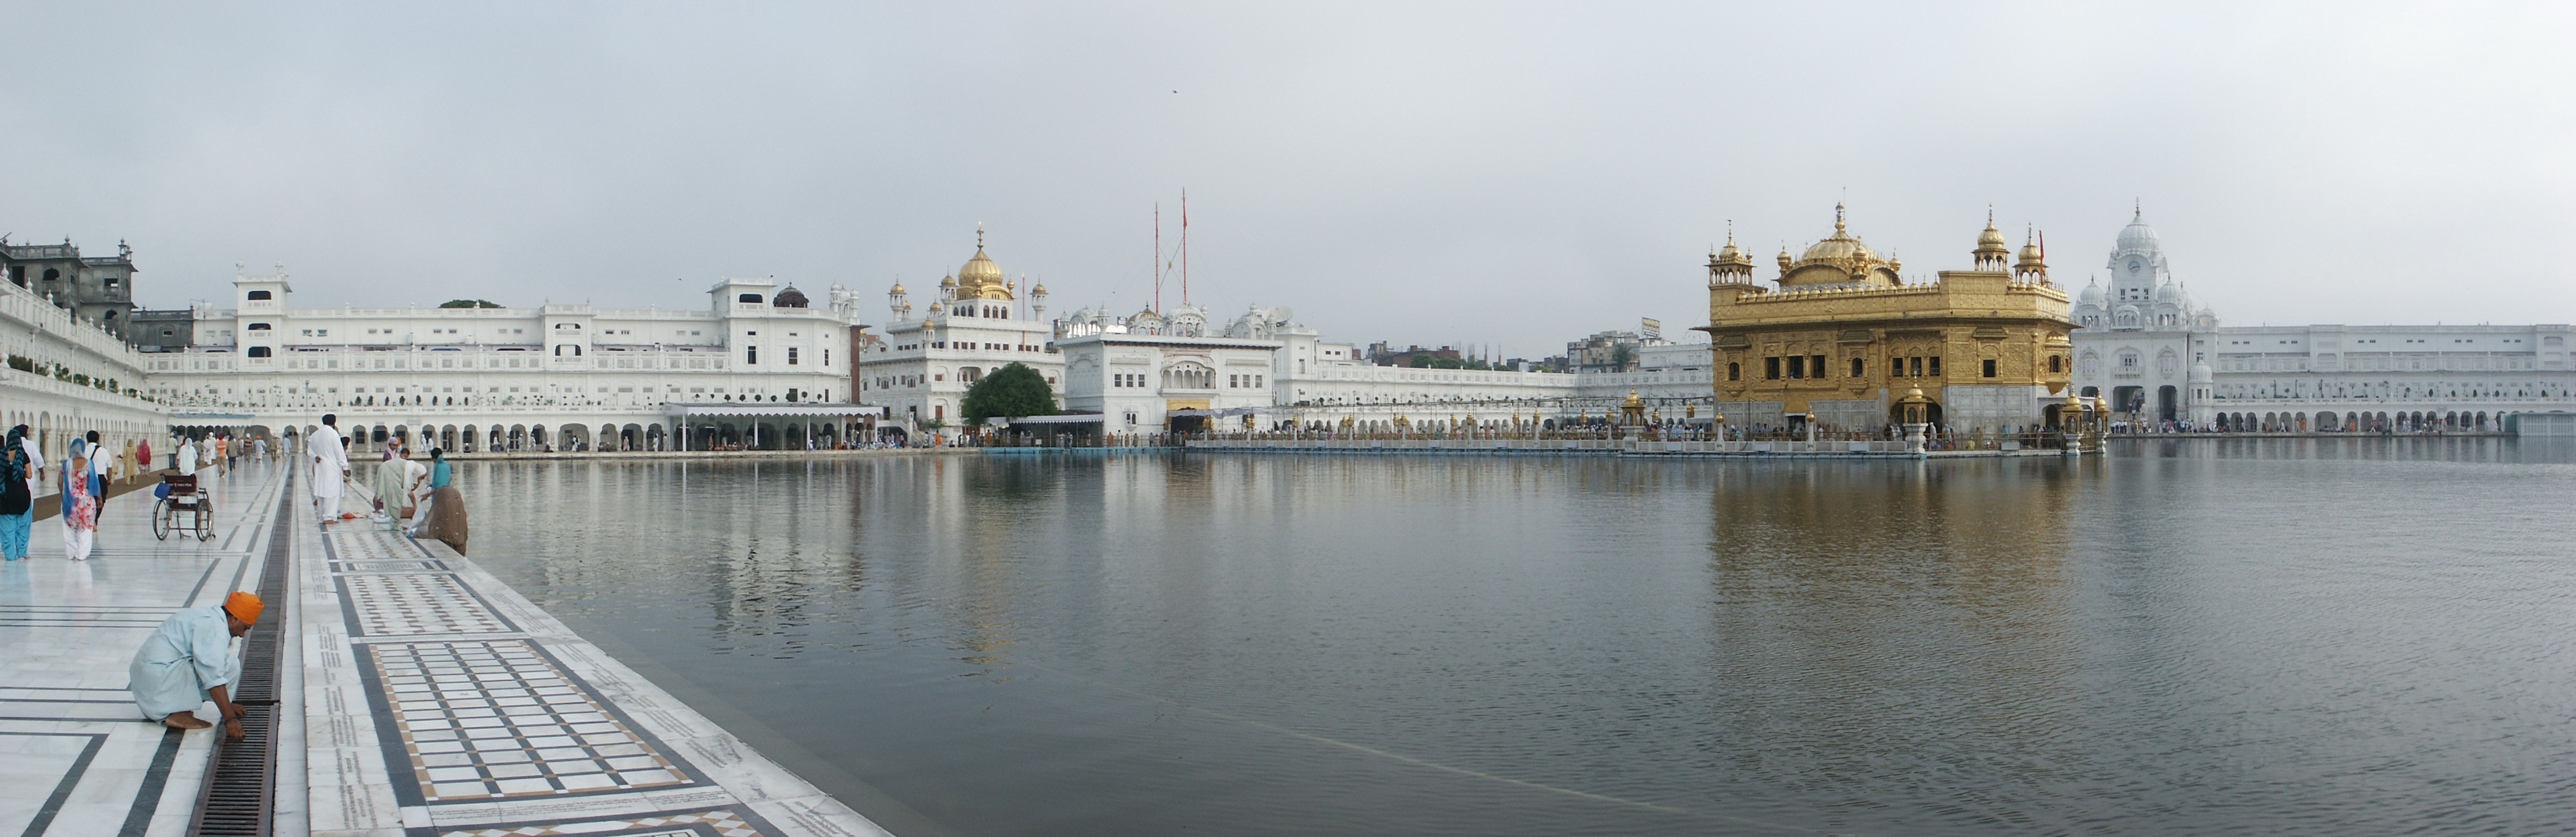 Supreme Car Wallpaper Admire The Majestic Beauty Of The Golden Temple In